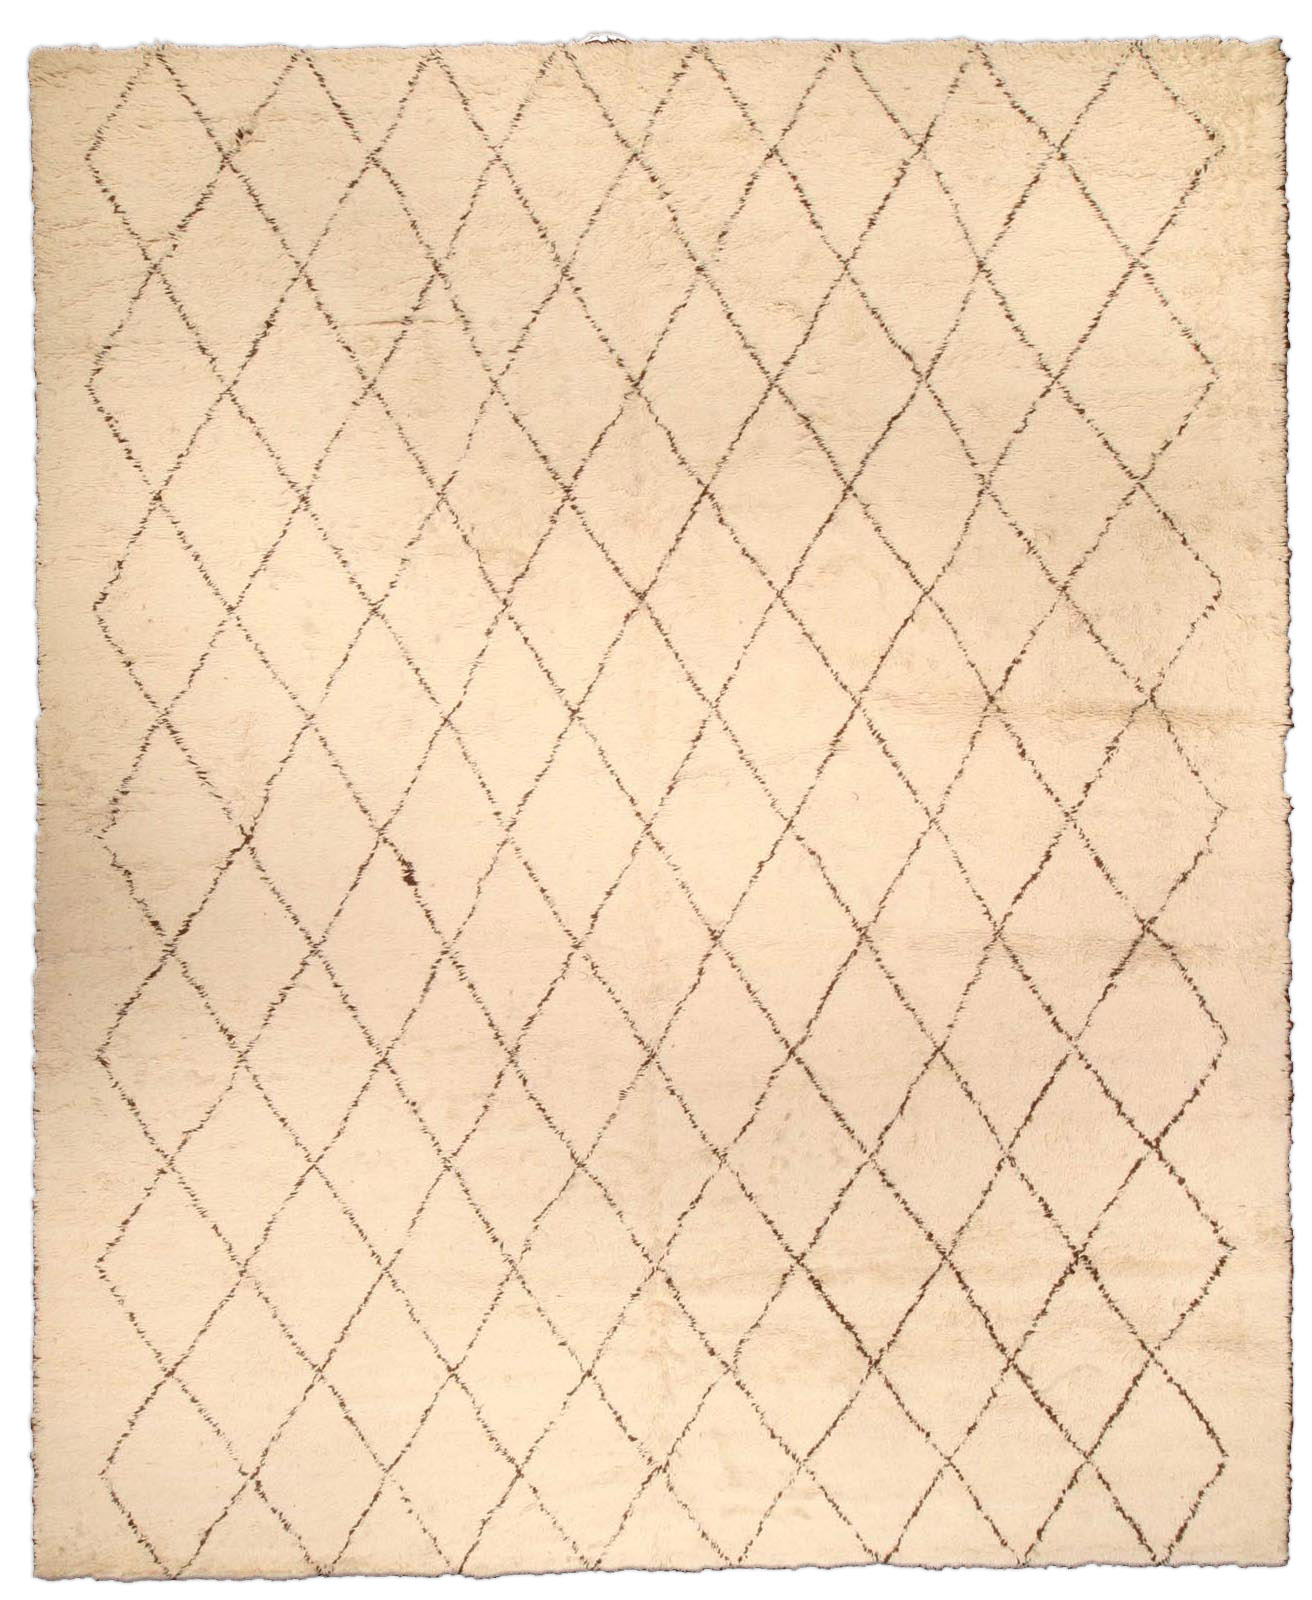 D-1801 Moroccan-inspired Rug 7ab